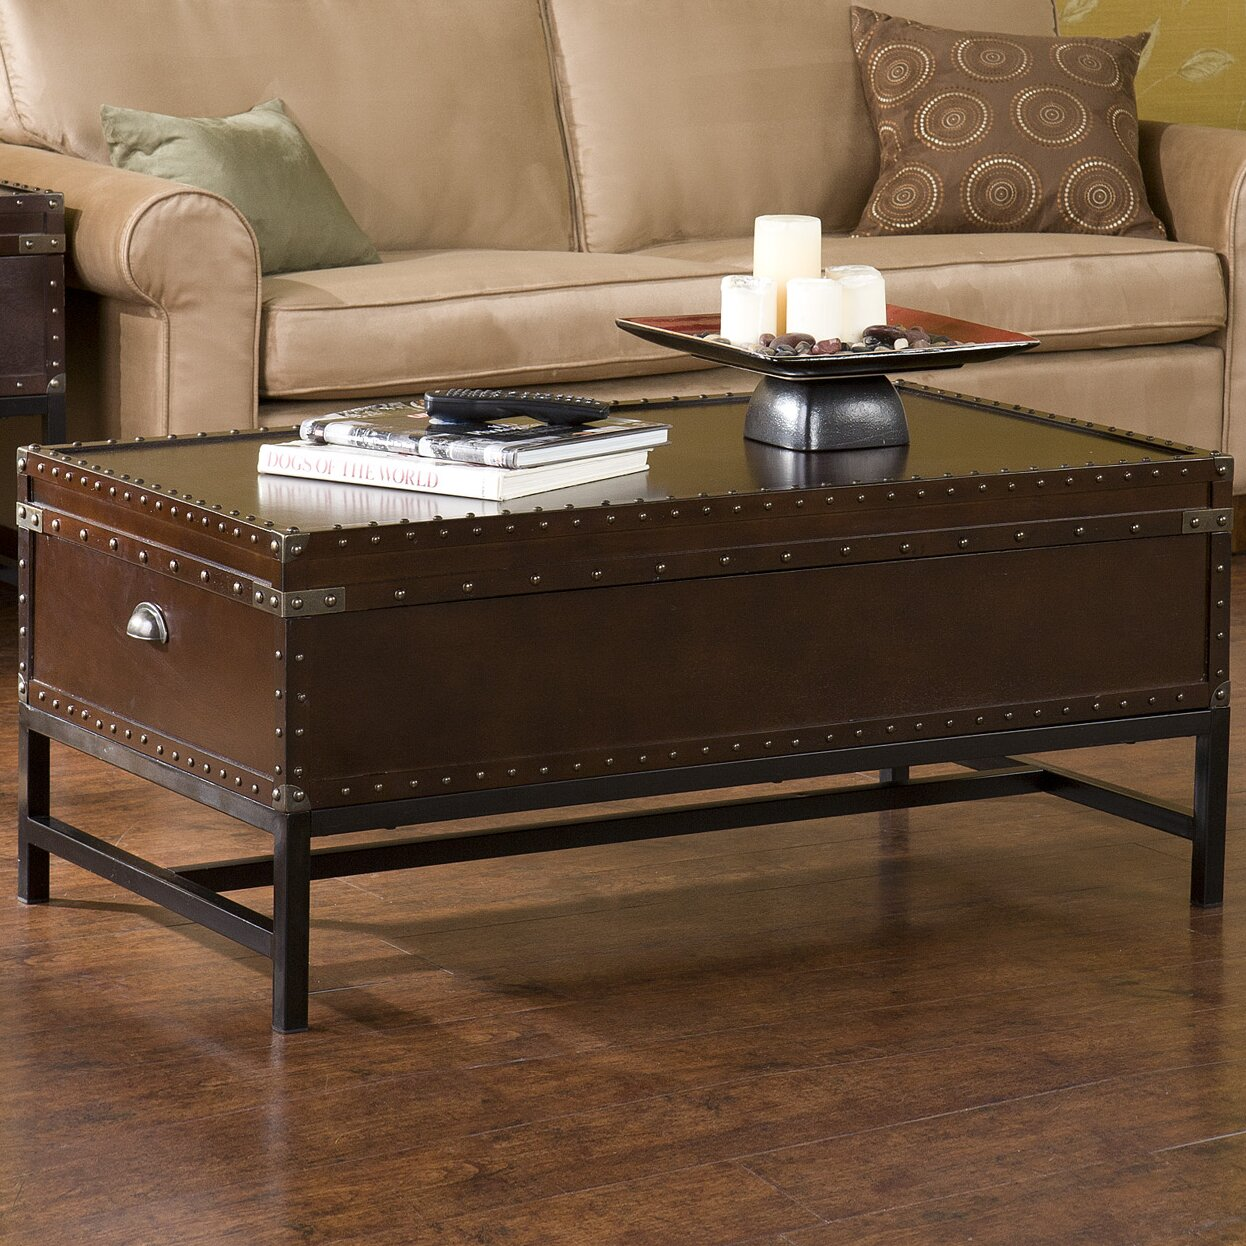 Southport 3 Piece Trunk Coffee Table Set - Wildon Home ® Southport 3 Piece Trunk Coffee Table Set & Reviews